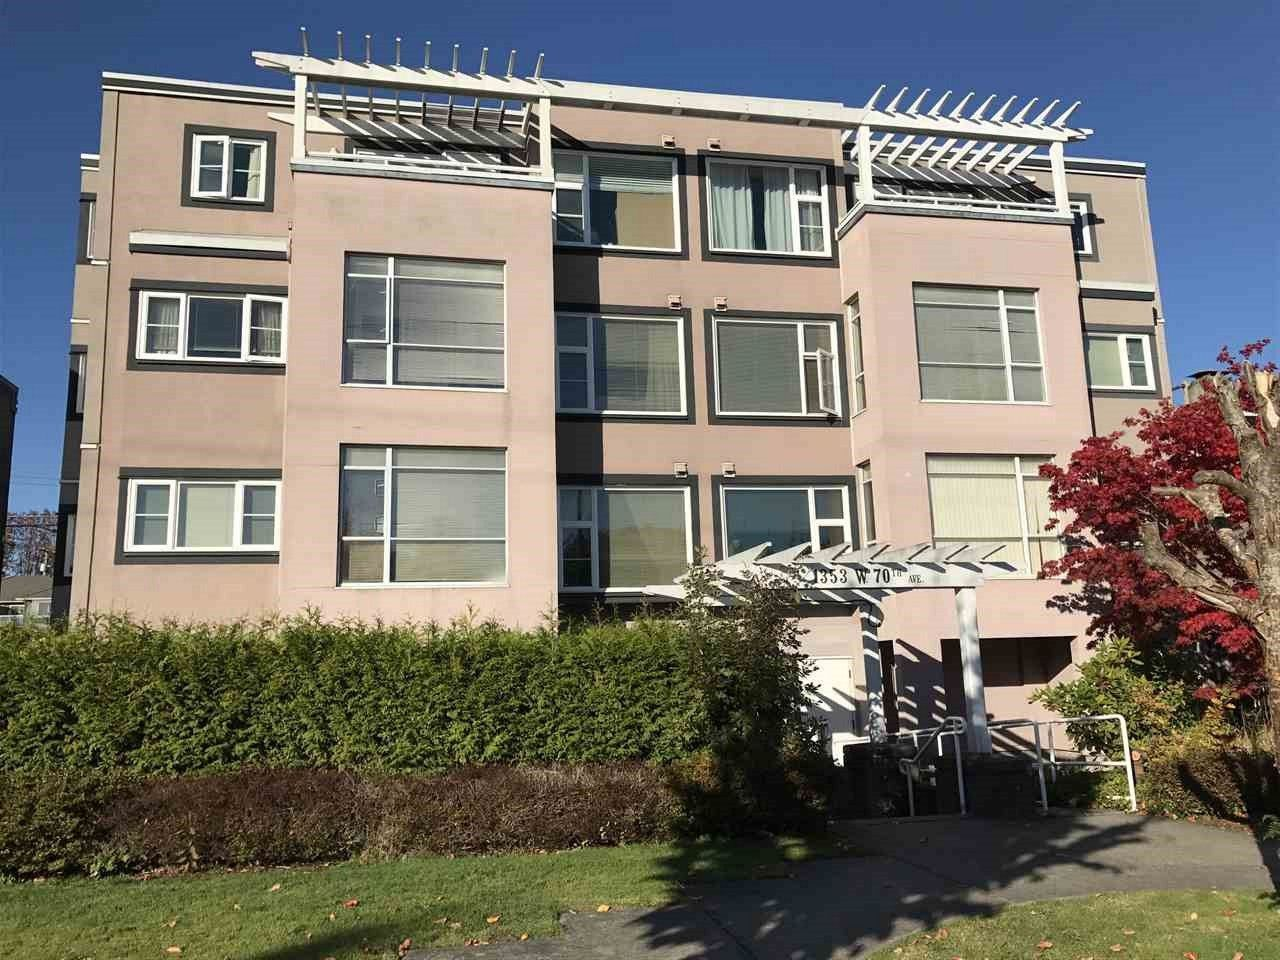 Main Photo: 304 1353 W 70TH Avenue in Vancouver: Marpole Condo for sale (Vancouver West)  : MLS®# R2217356